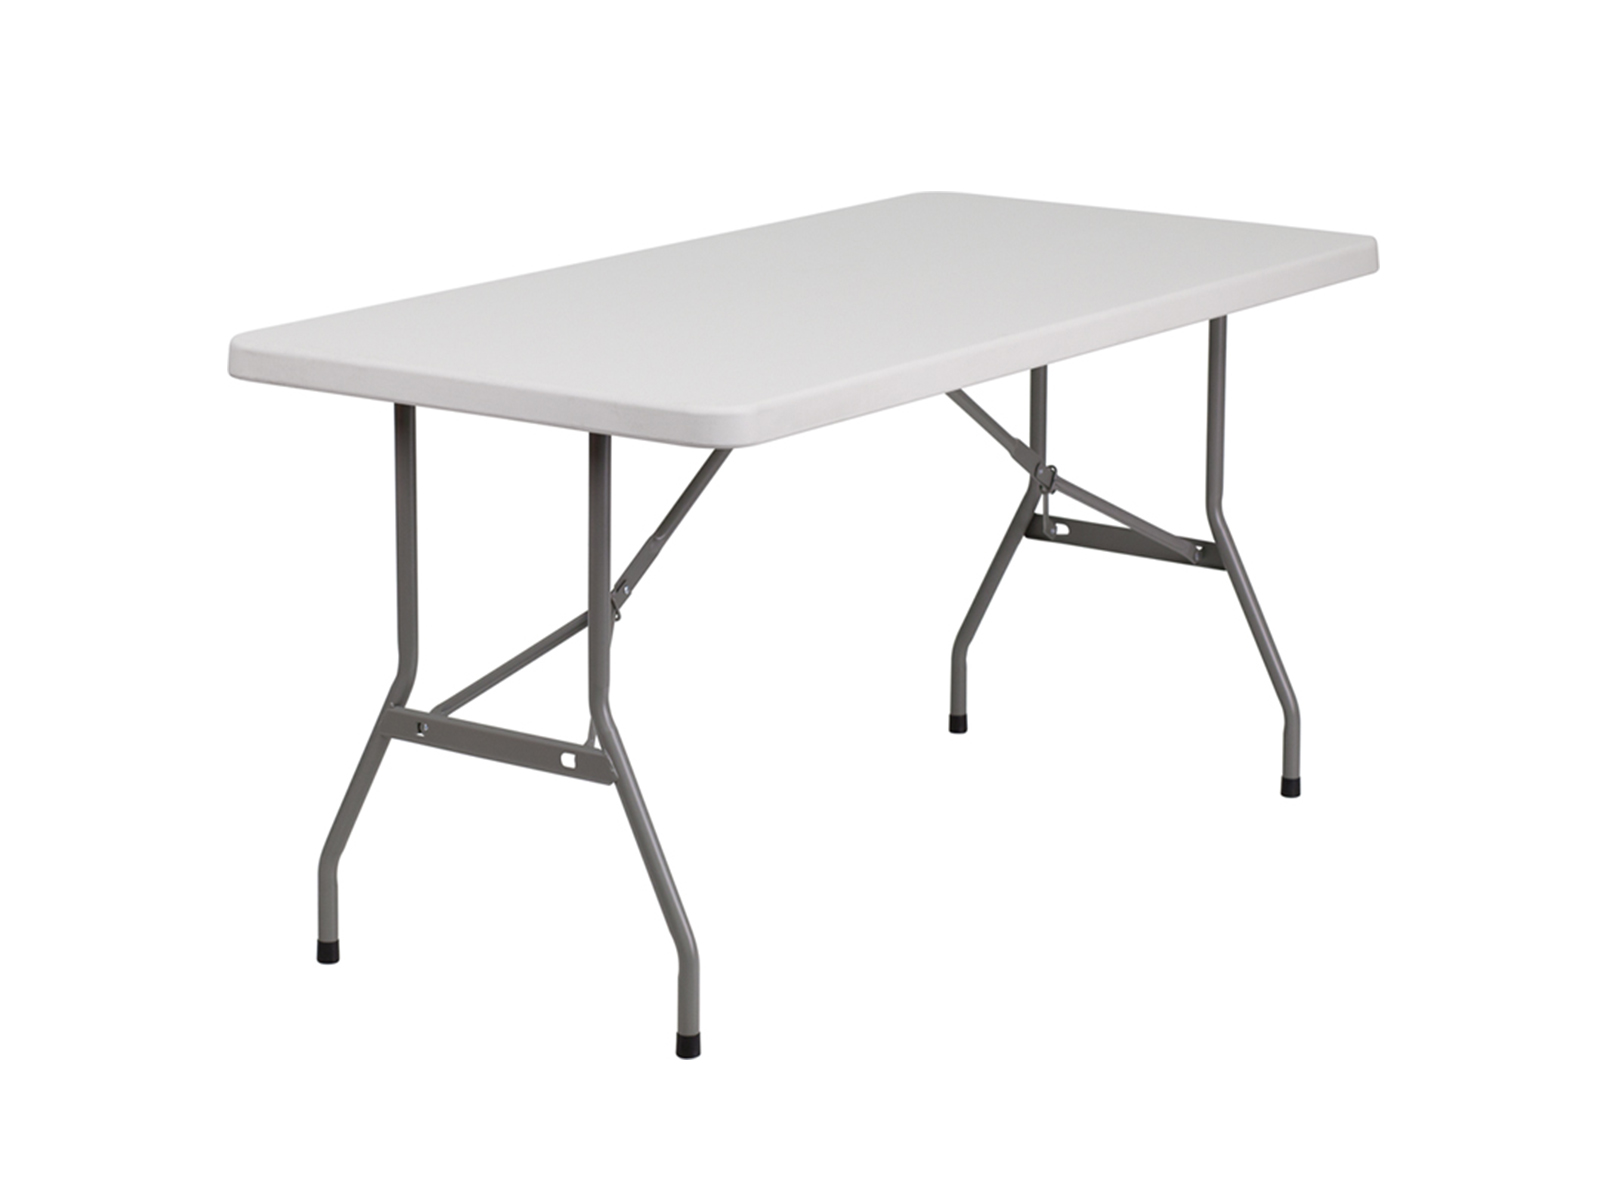 5' Plastic Folding Table